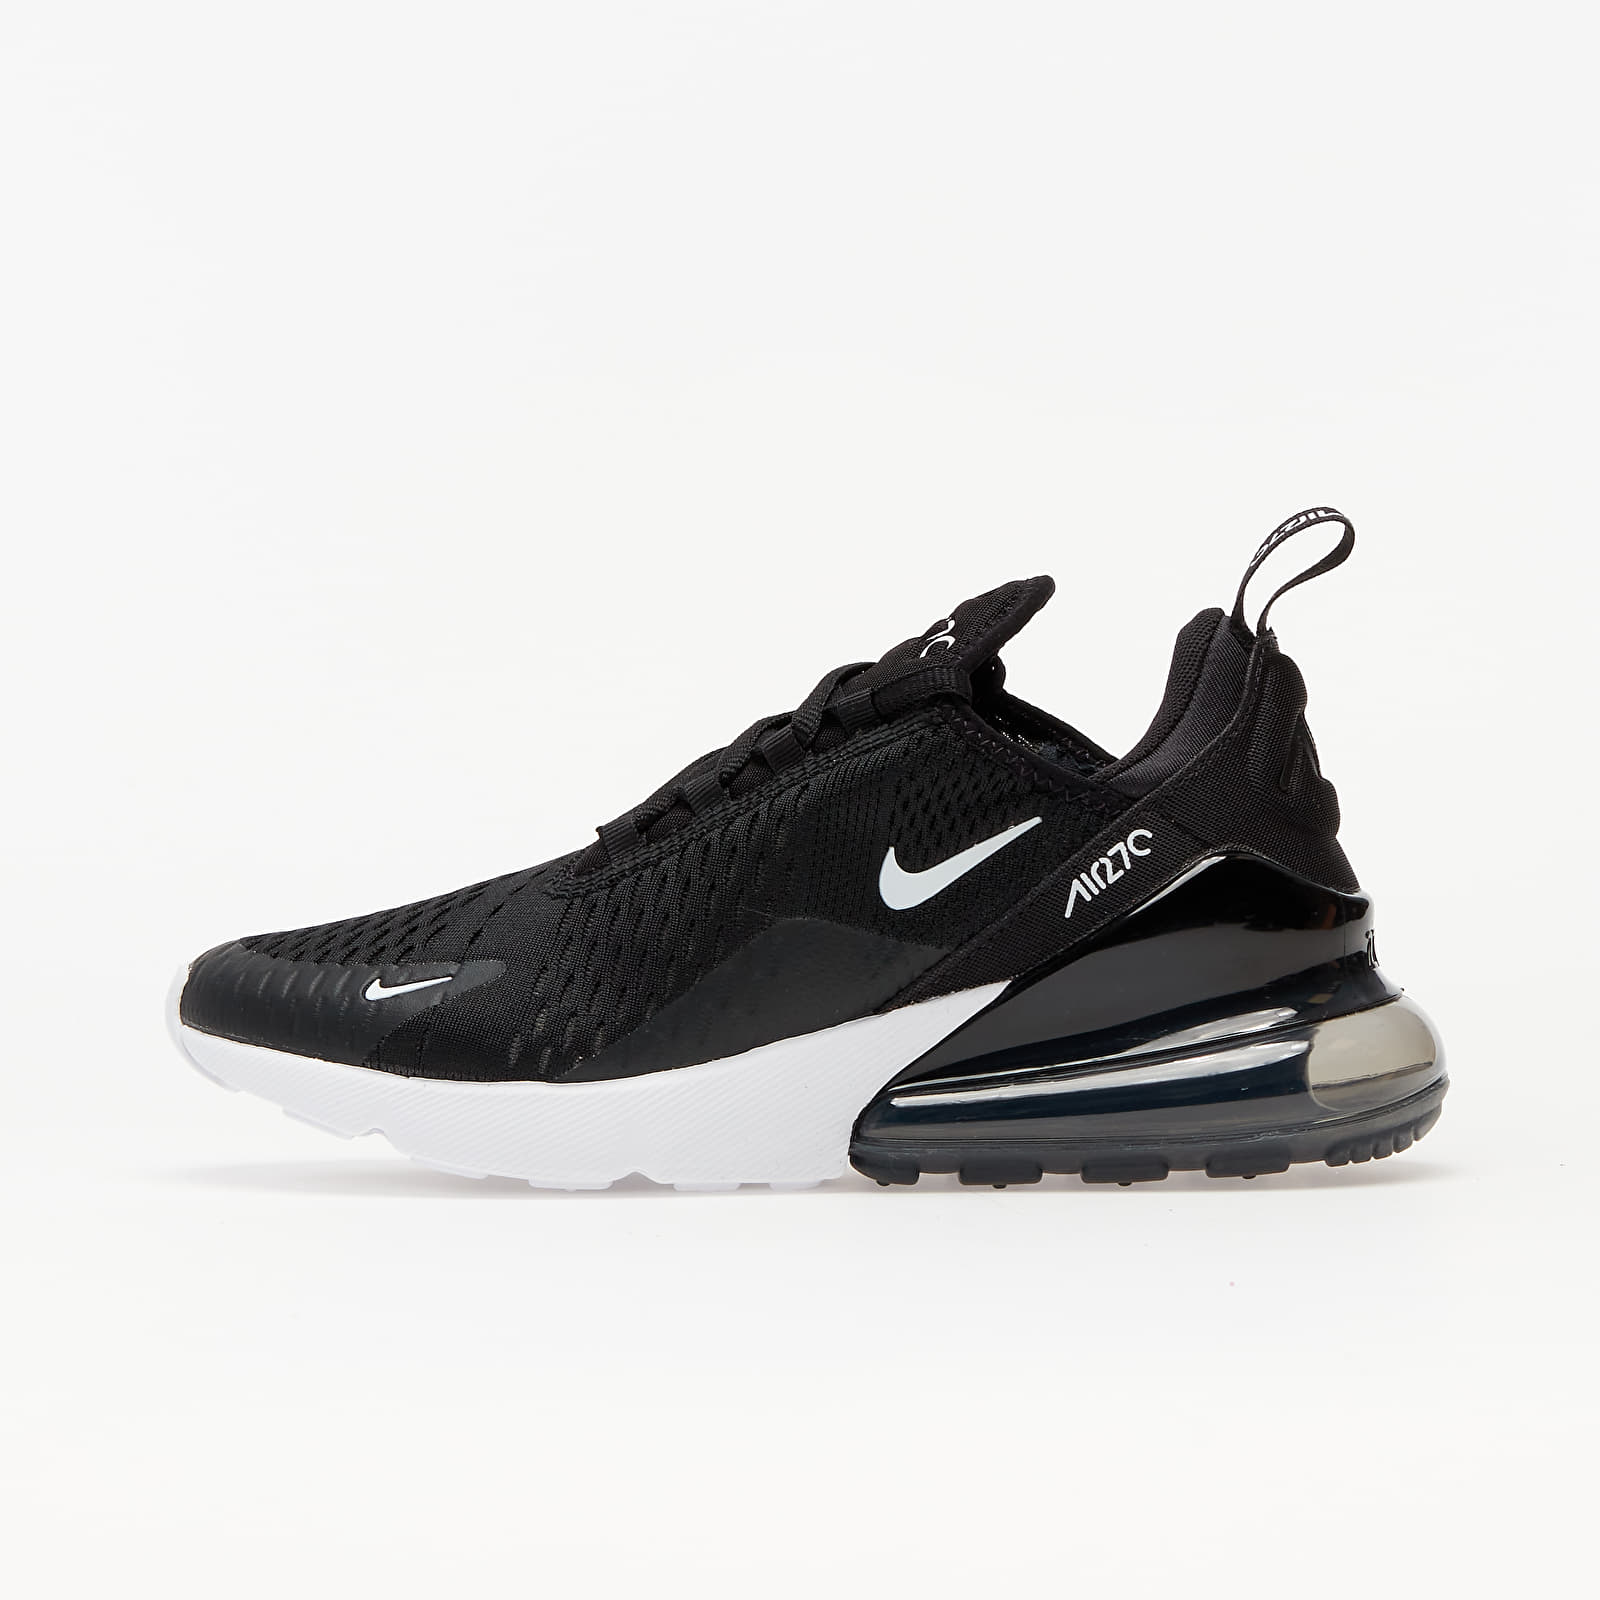 Nike W Air Max 270 Black/ Anthracite-White EUR 40.5